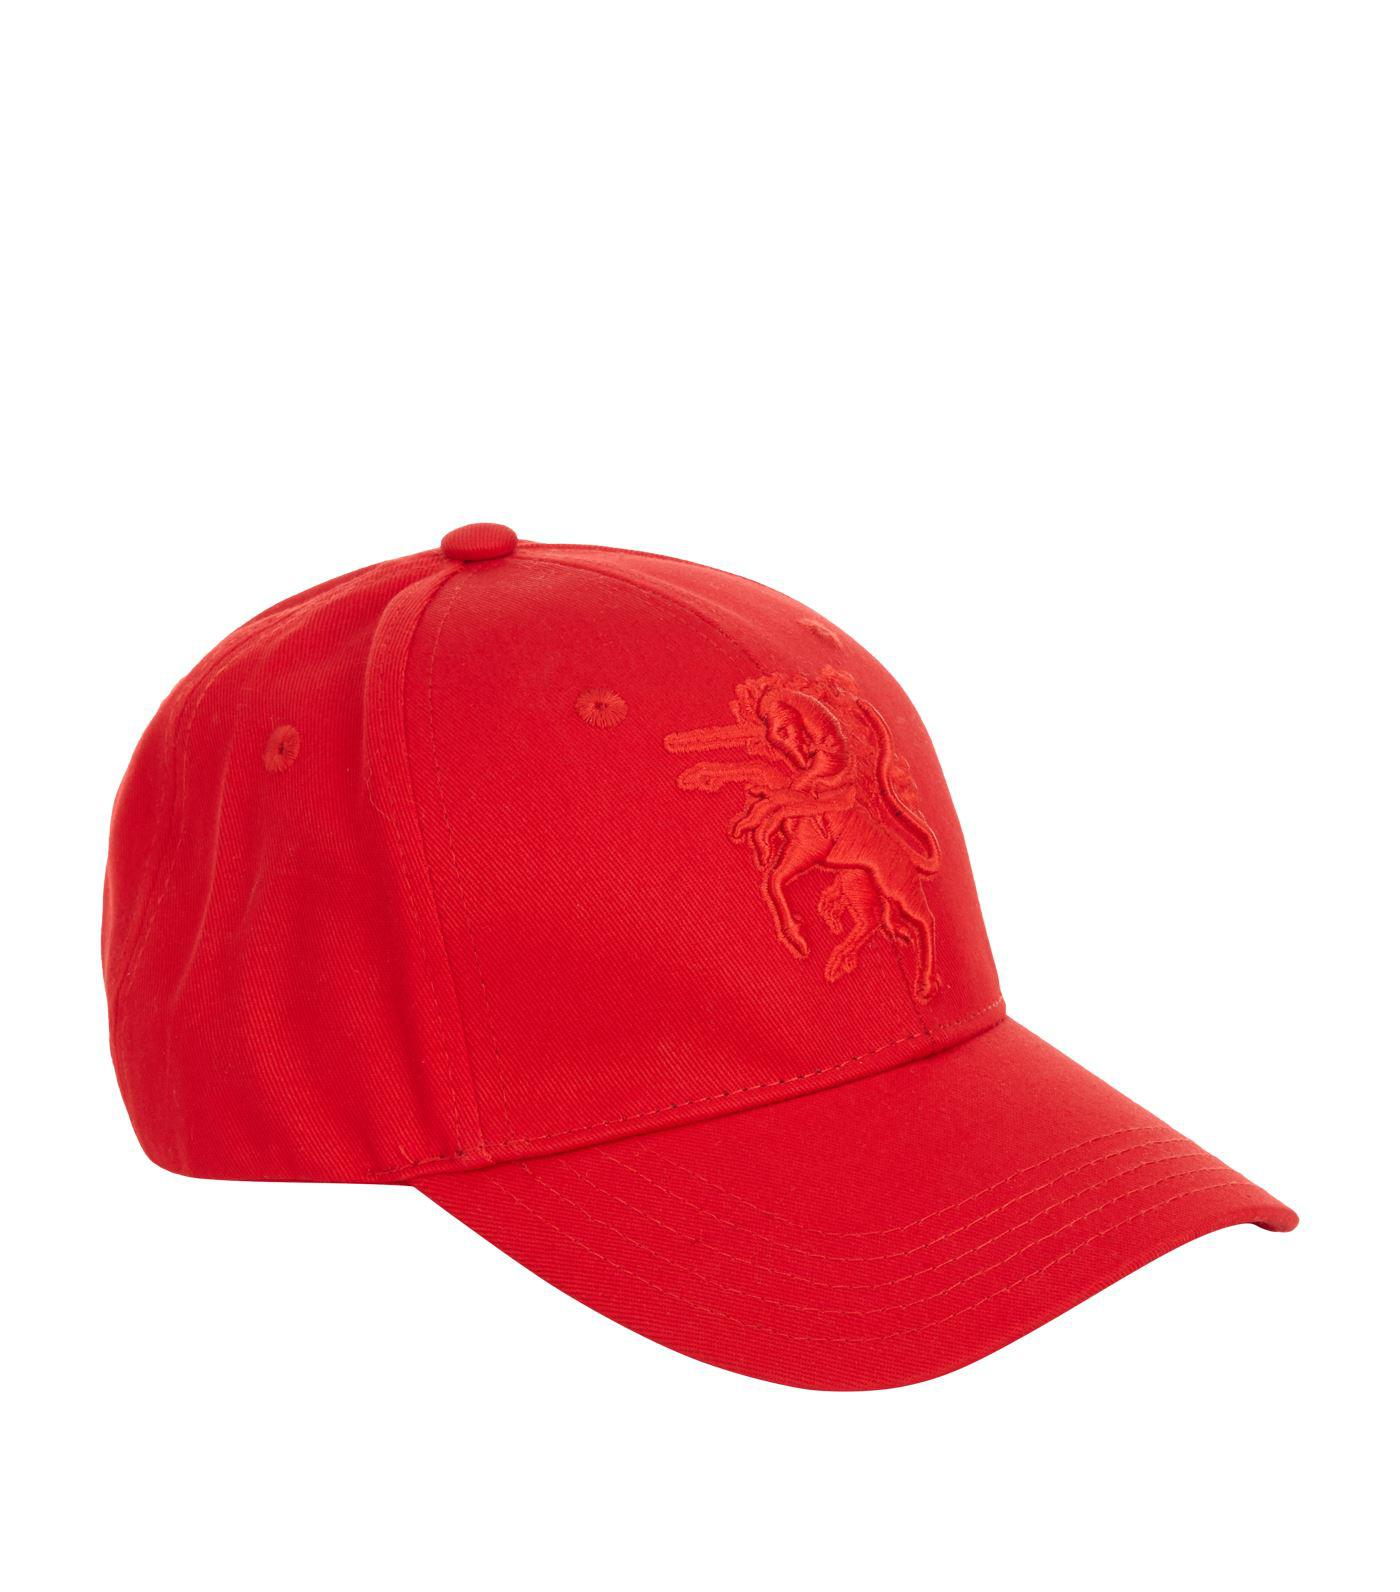 Philip Treacy Logo Embellished Baseball Cap in Red for Men - Lyst af55964fb845